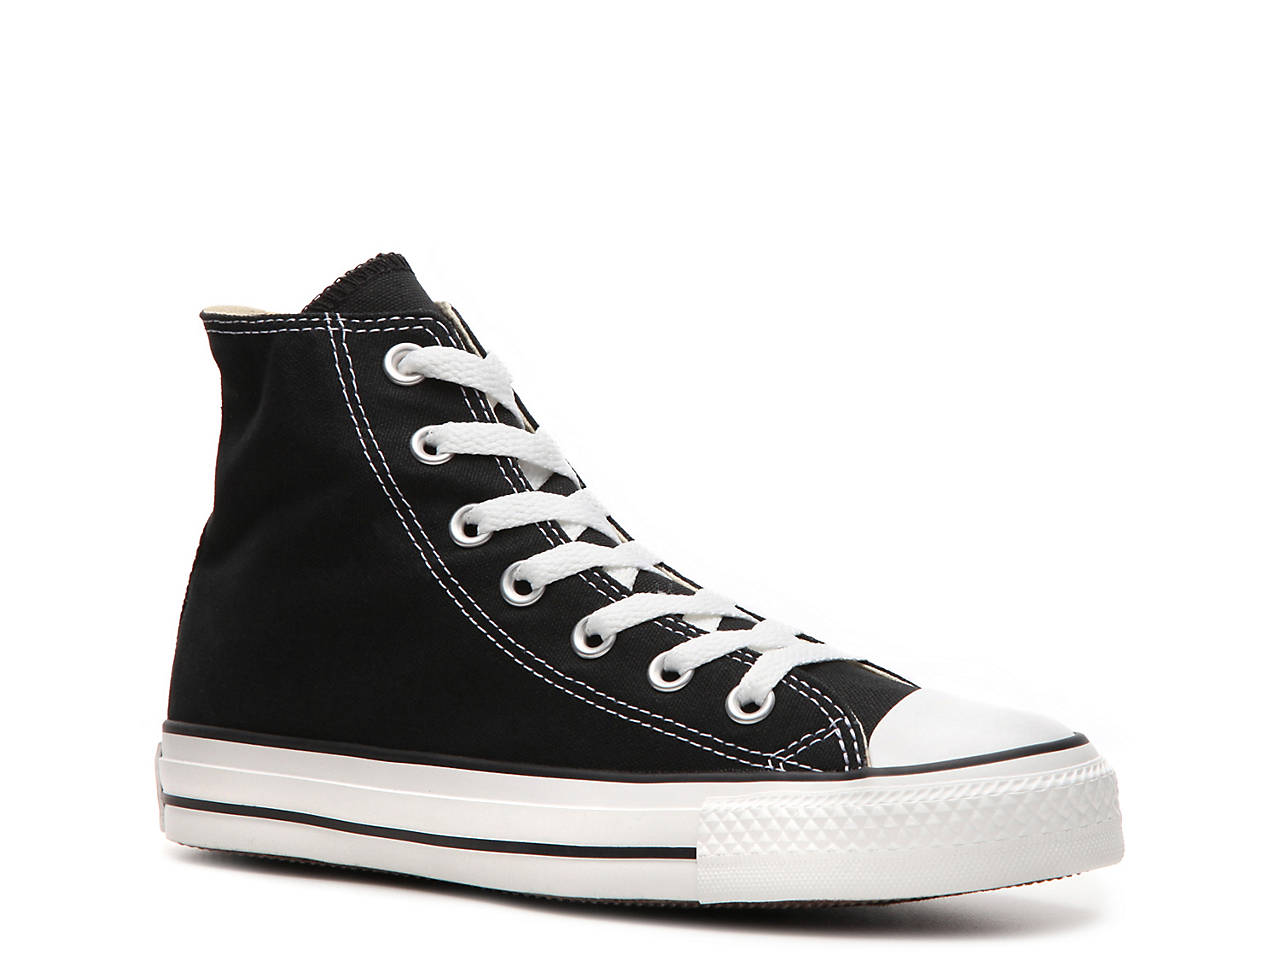 a97efdba20ea Converse Chuck Taylor All Star High-Top Sneaker - Women s Women s ...